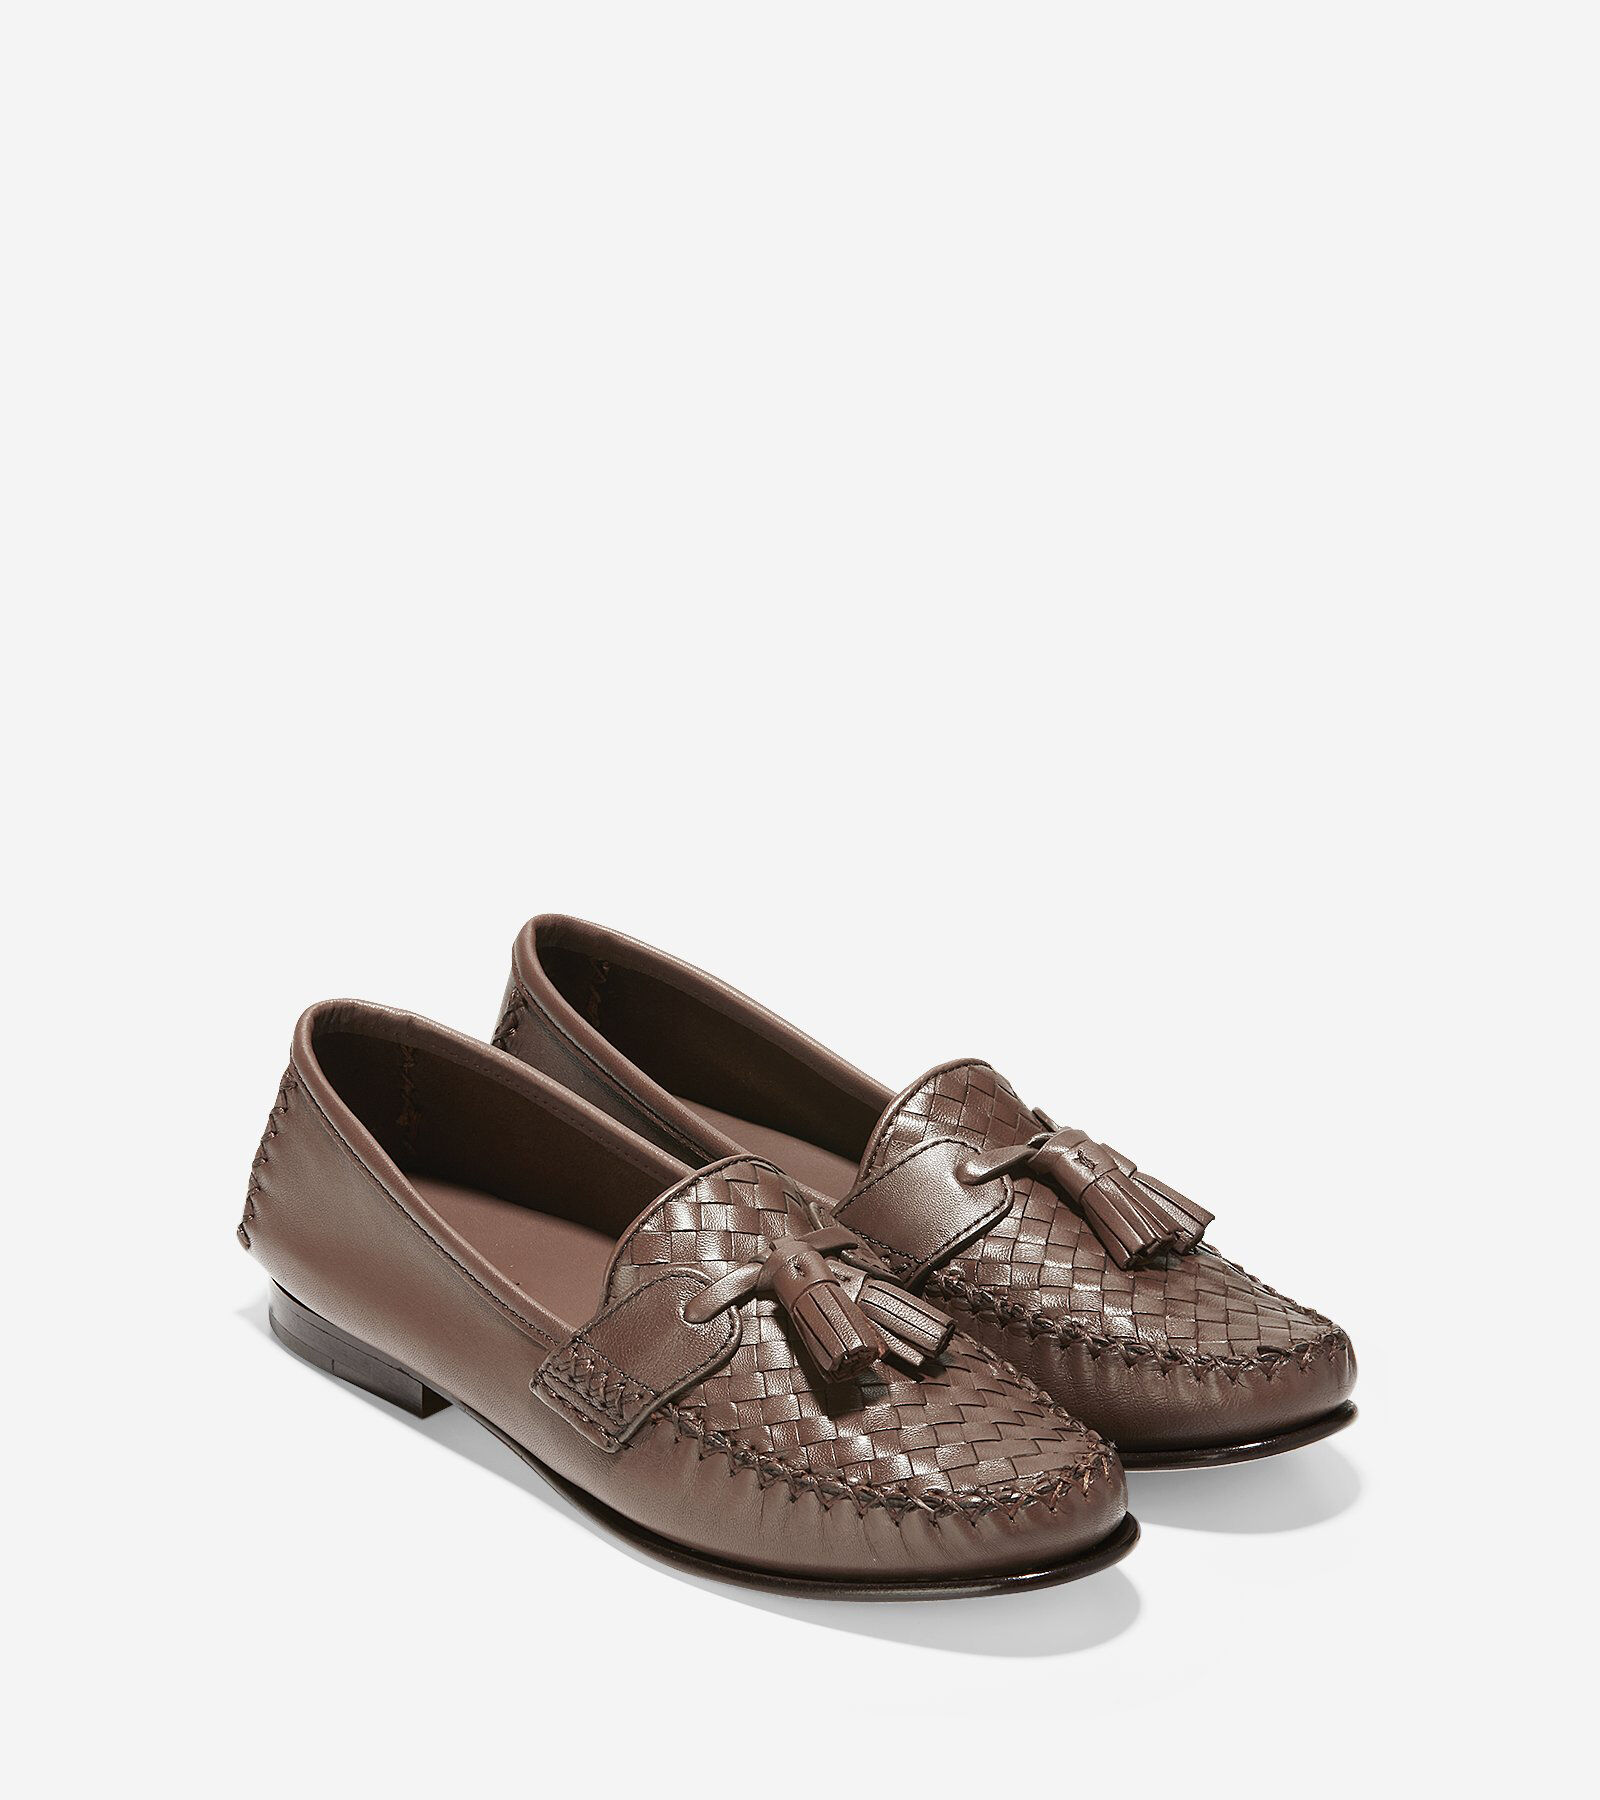 9eb2b0e7562 Cole Haan Jagger Soft Weave Loafer o7sfjcpF - solowwehd.com